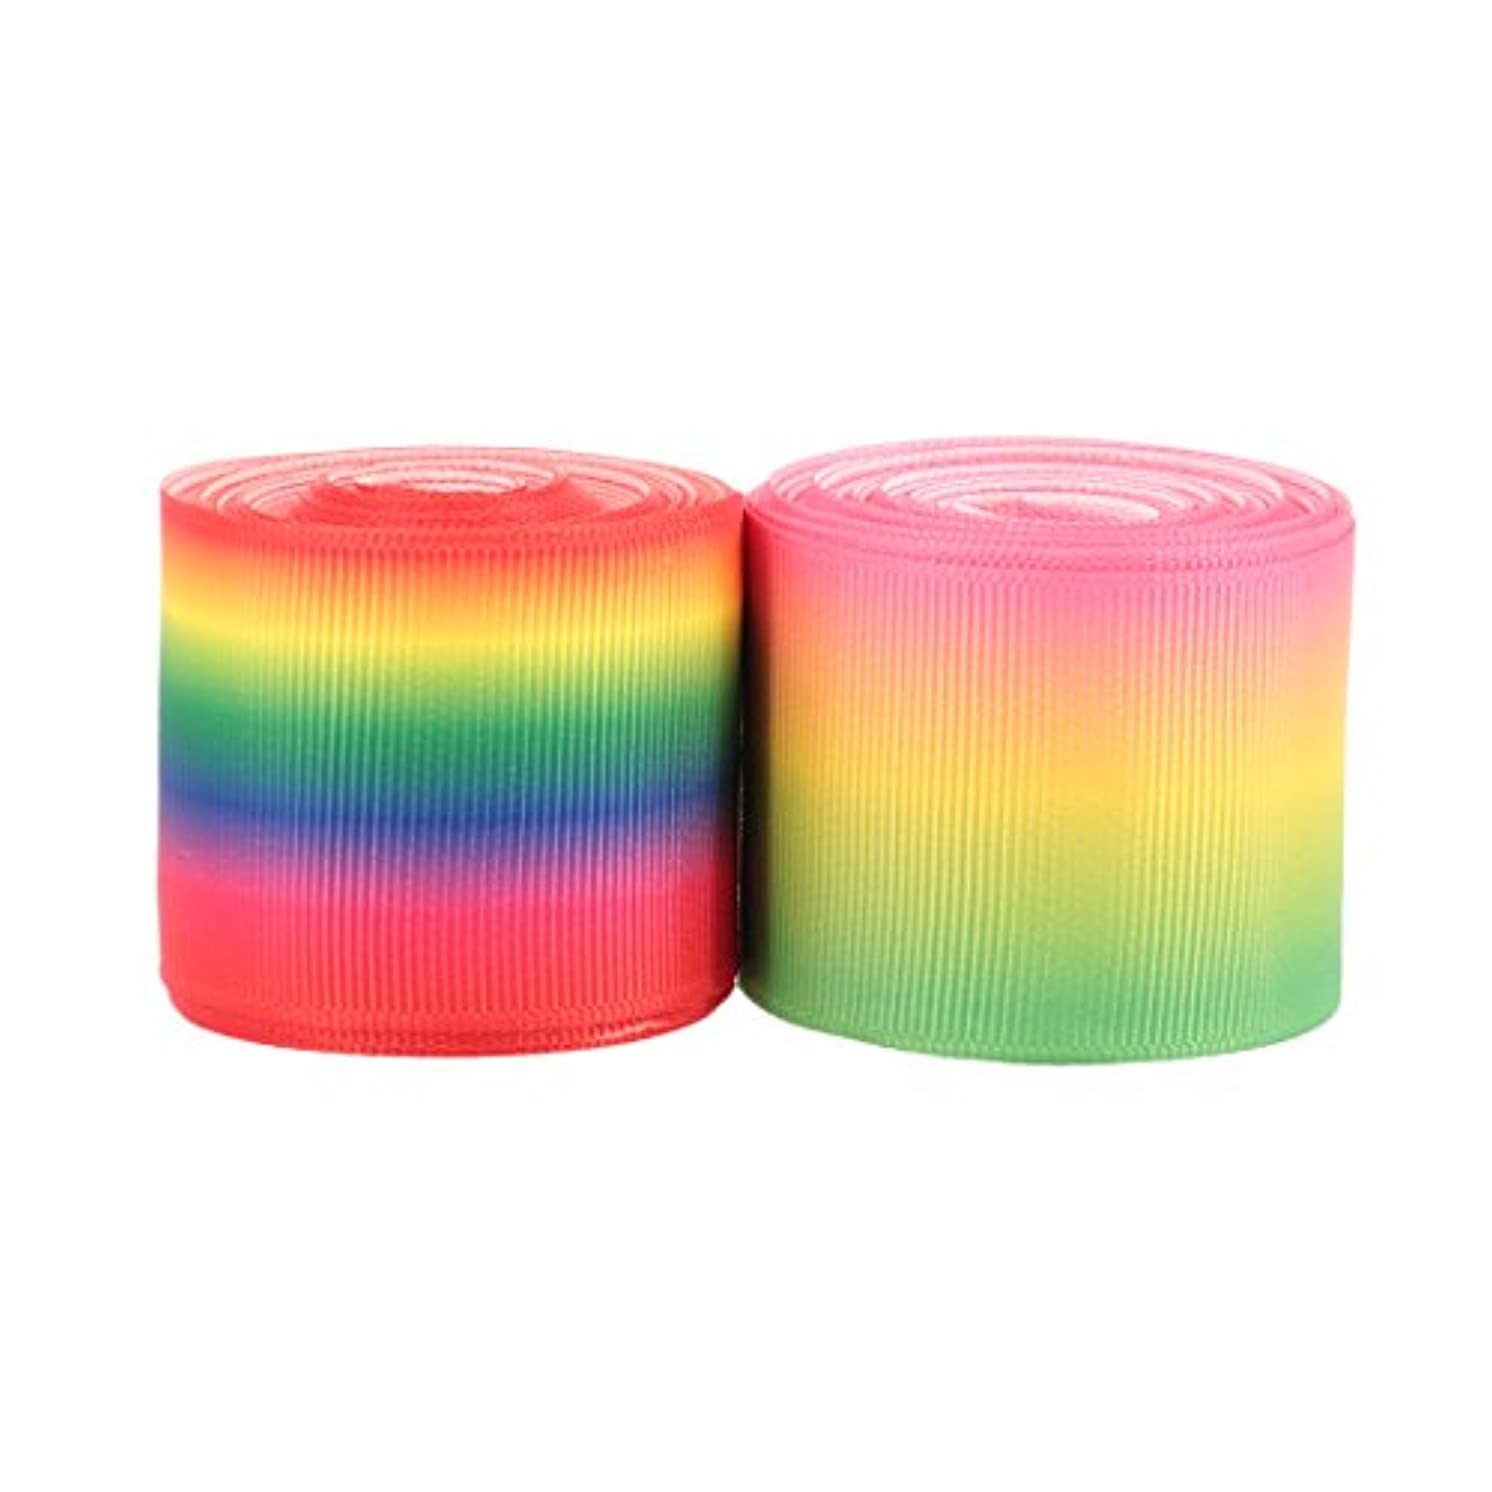 Naimo Rainbow Color Printed Grosgrain Ribbon for DIY Handmade Hair Bow Clip Accessories and Festival Wedding Party Birthday Bridal Shower Decoration